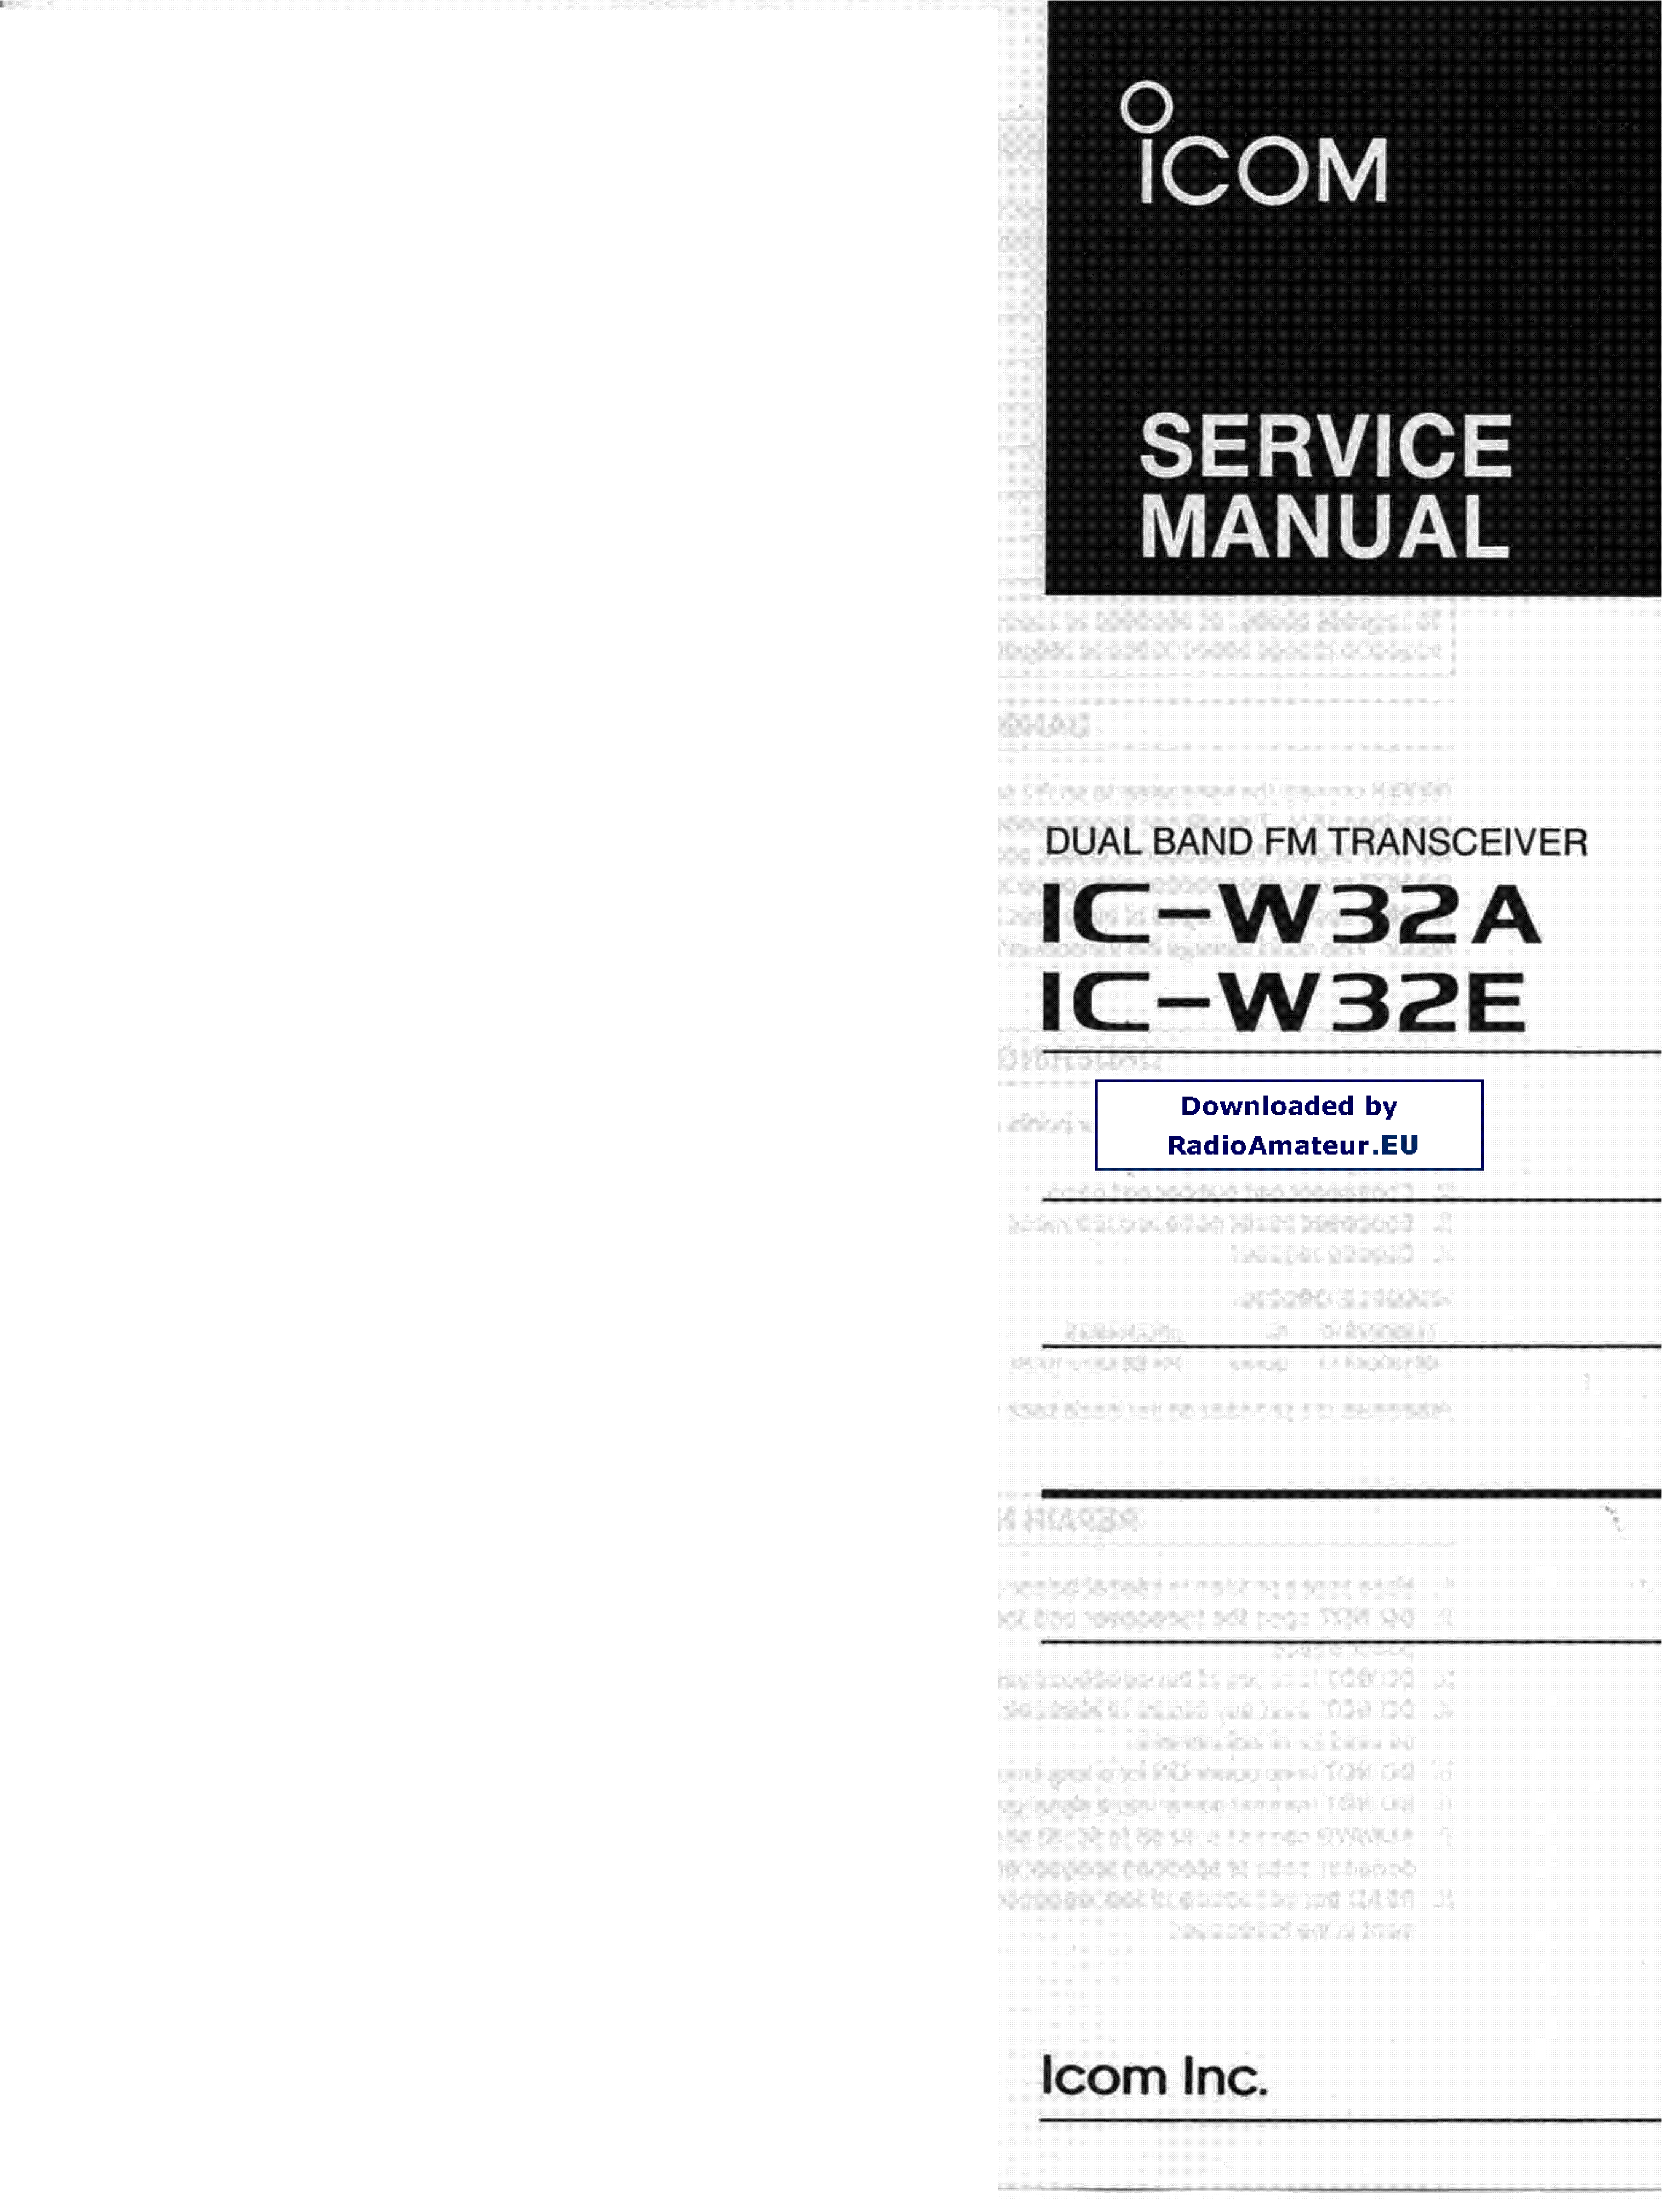 ICOM IC-W32 service manual (1st page)